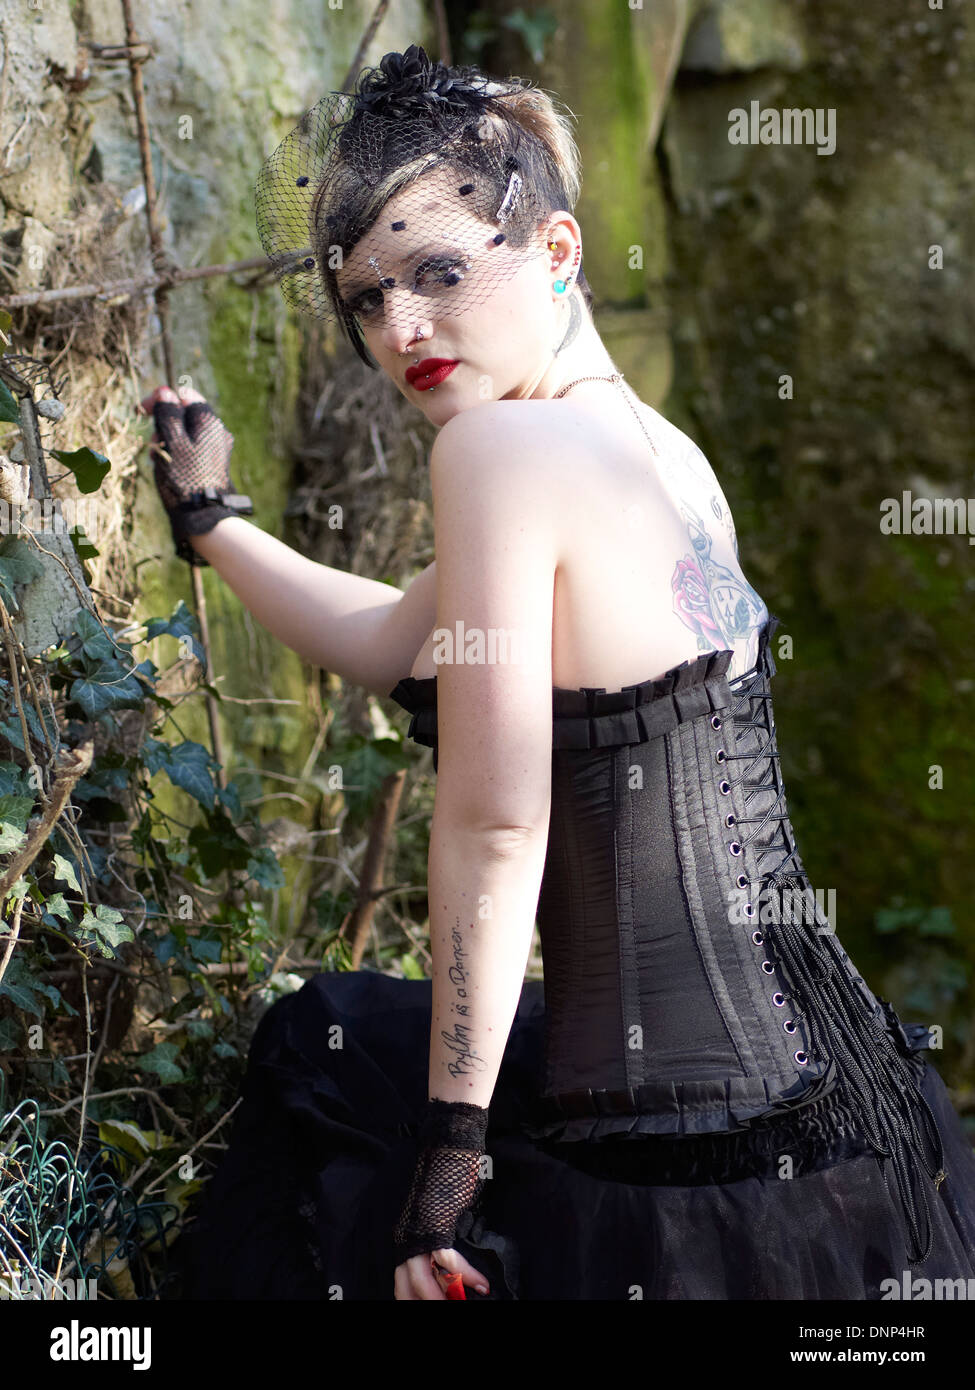 Young woman wearing Steampunk clothing, Victorian style - Stock Image